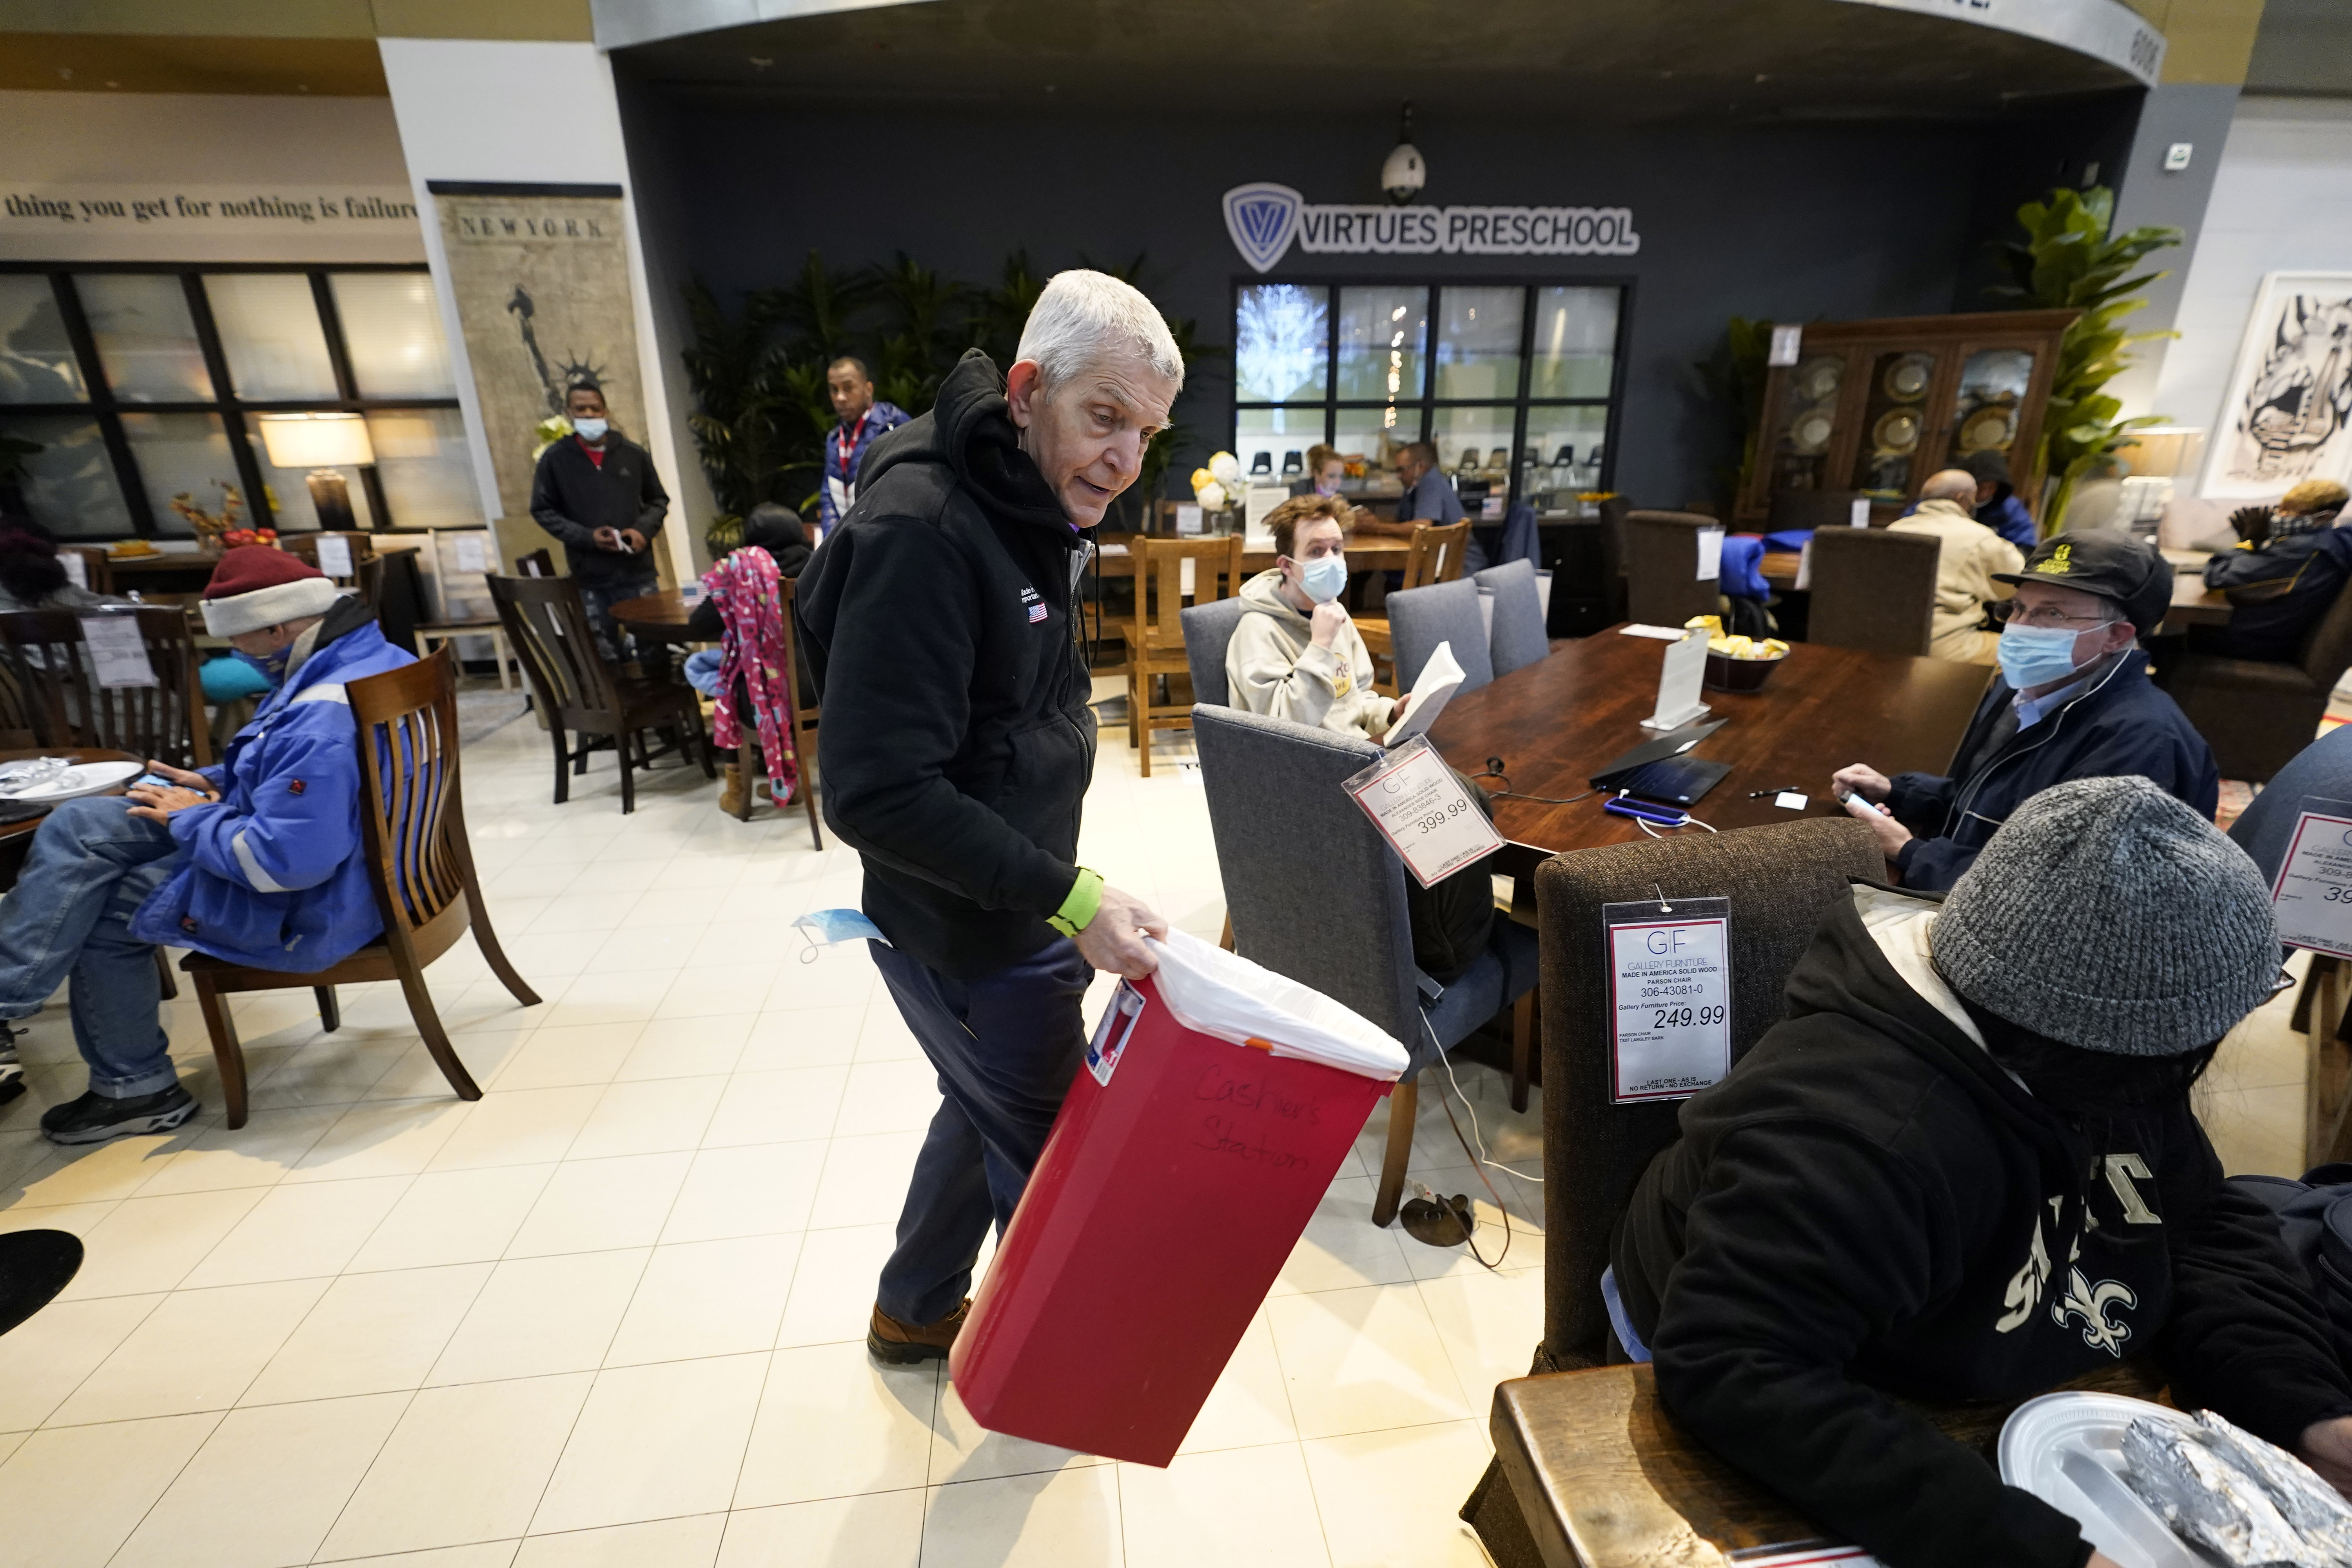 Mattress Mack Owner Of Houston Furniture Store Offers Shelter To Residents After Winter Storm Ktla